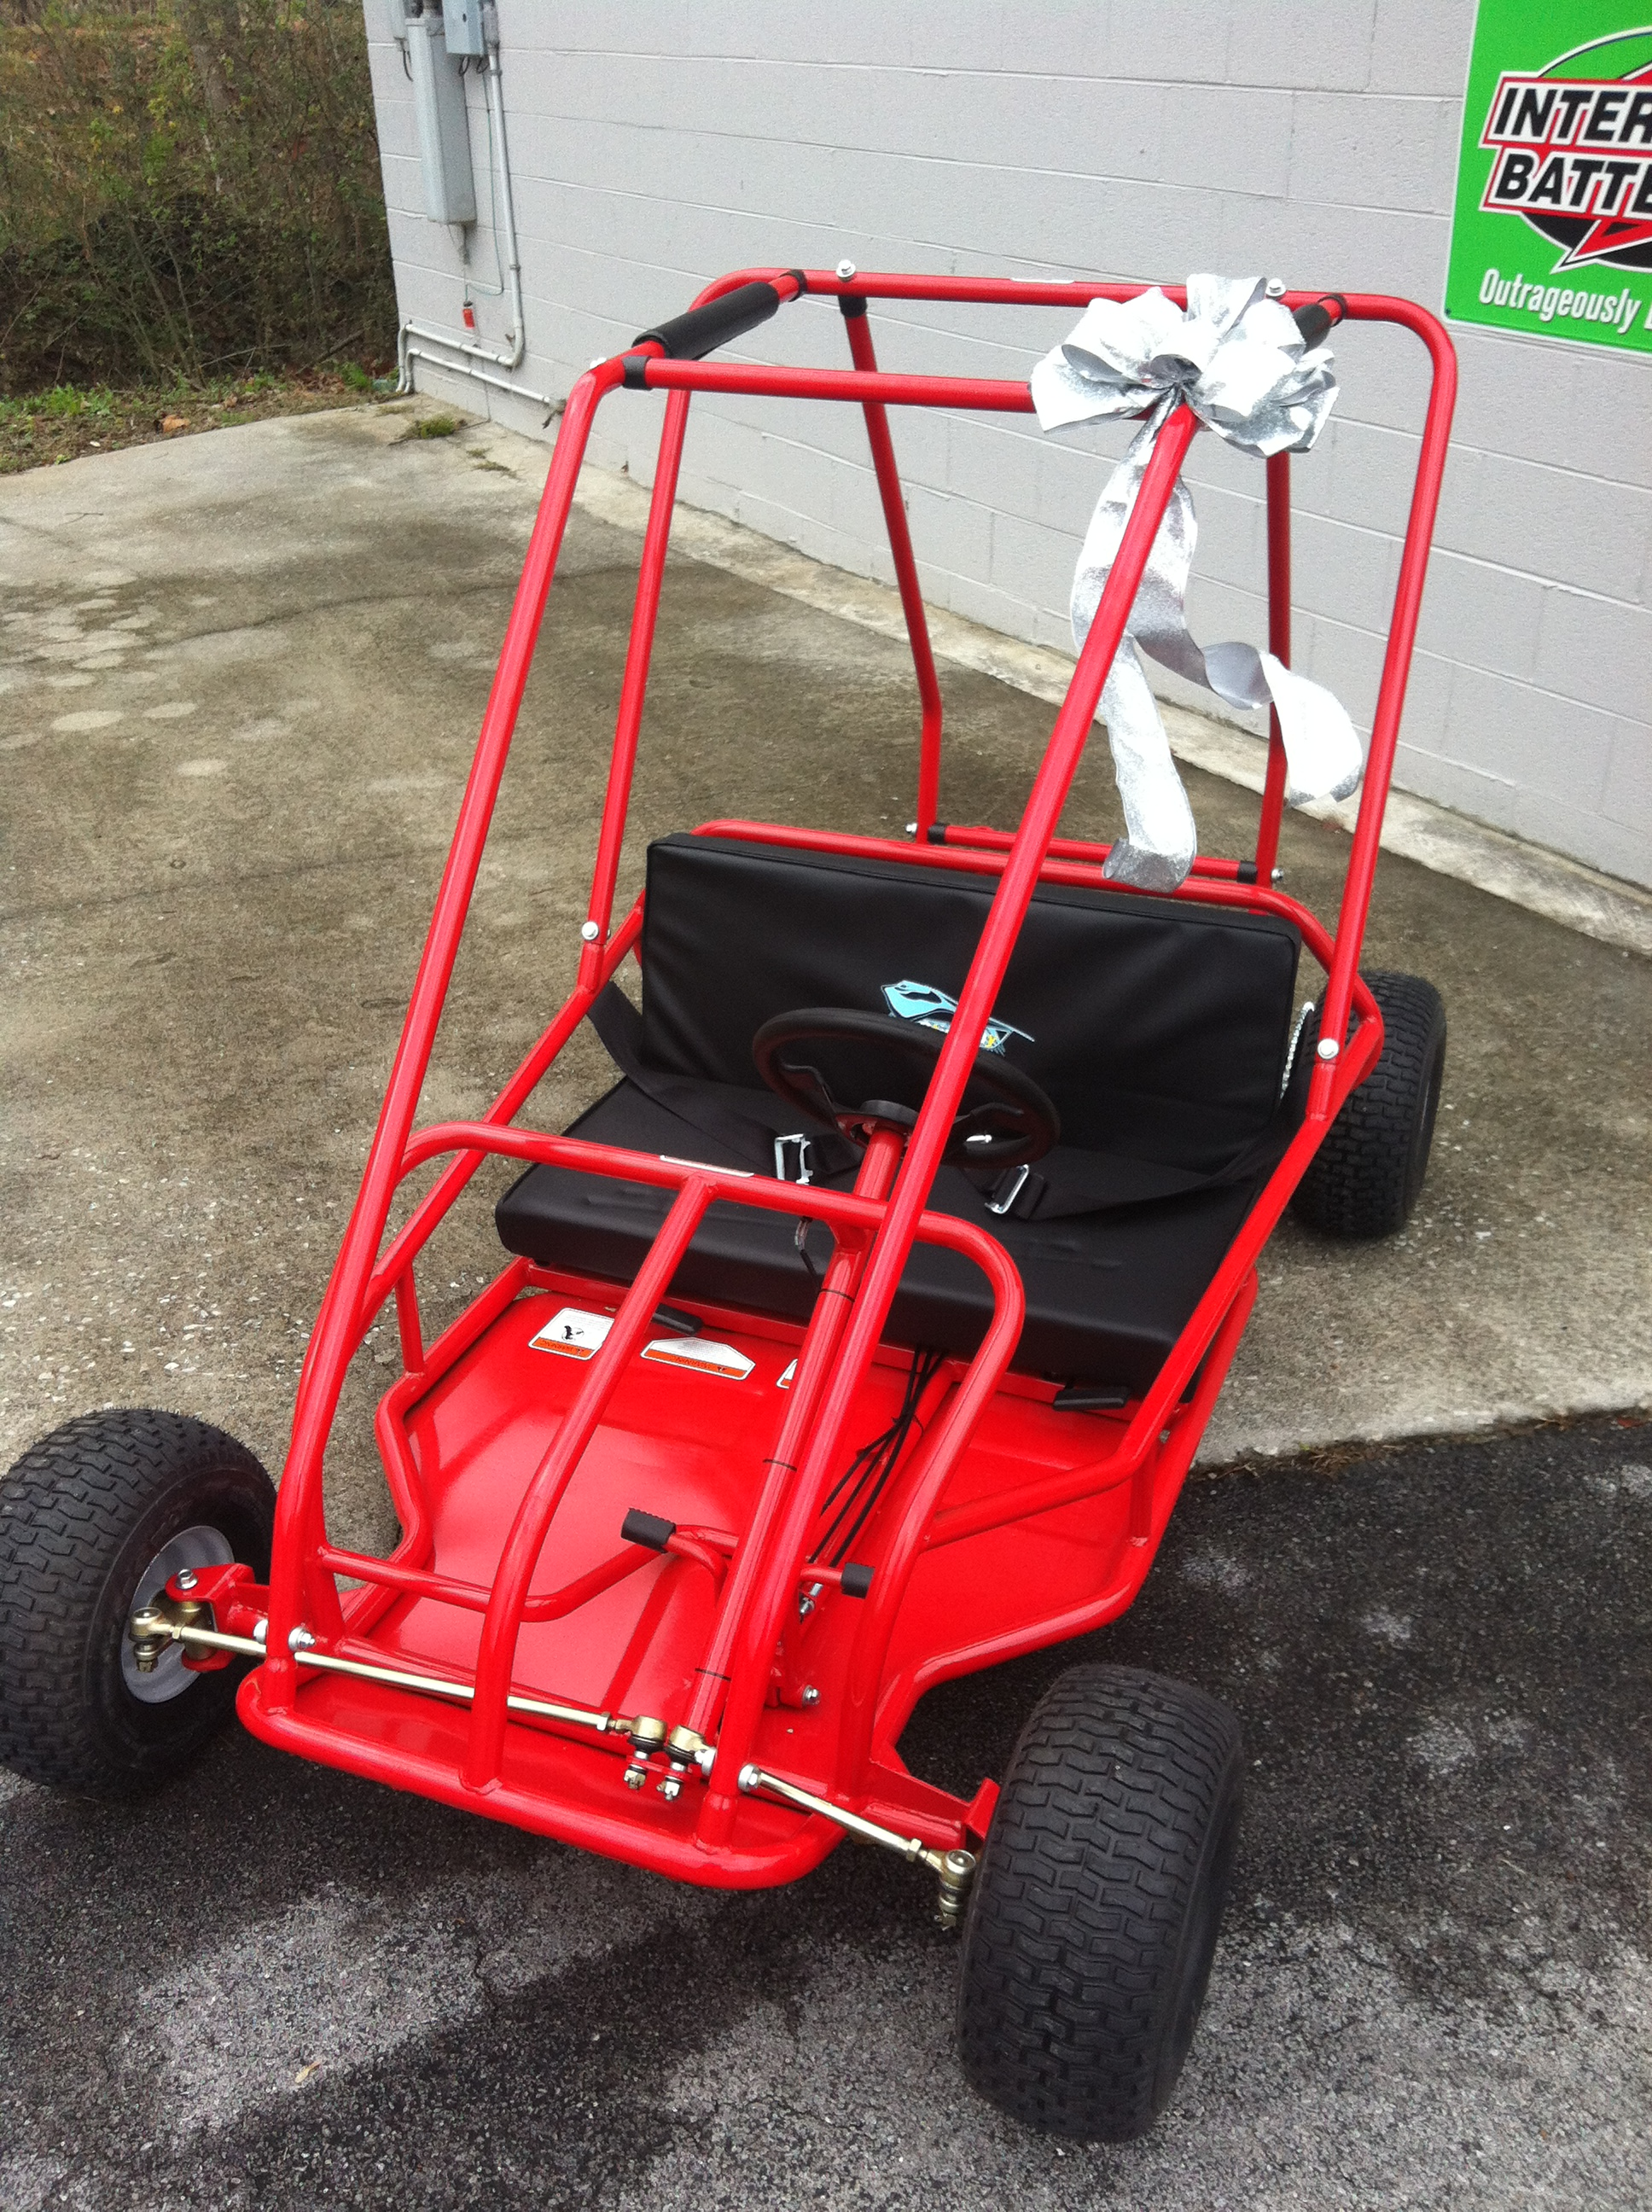 Go Karts Now in Stock!! - ProGreen Plus | Knoxville, TN | Lawn Mower Parts | Riding Lawn Mower ...